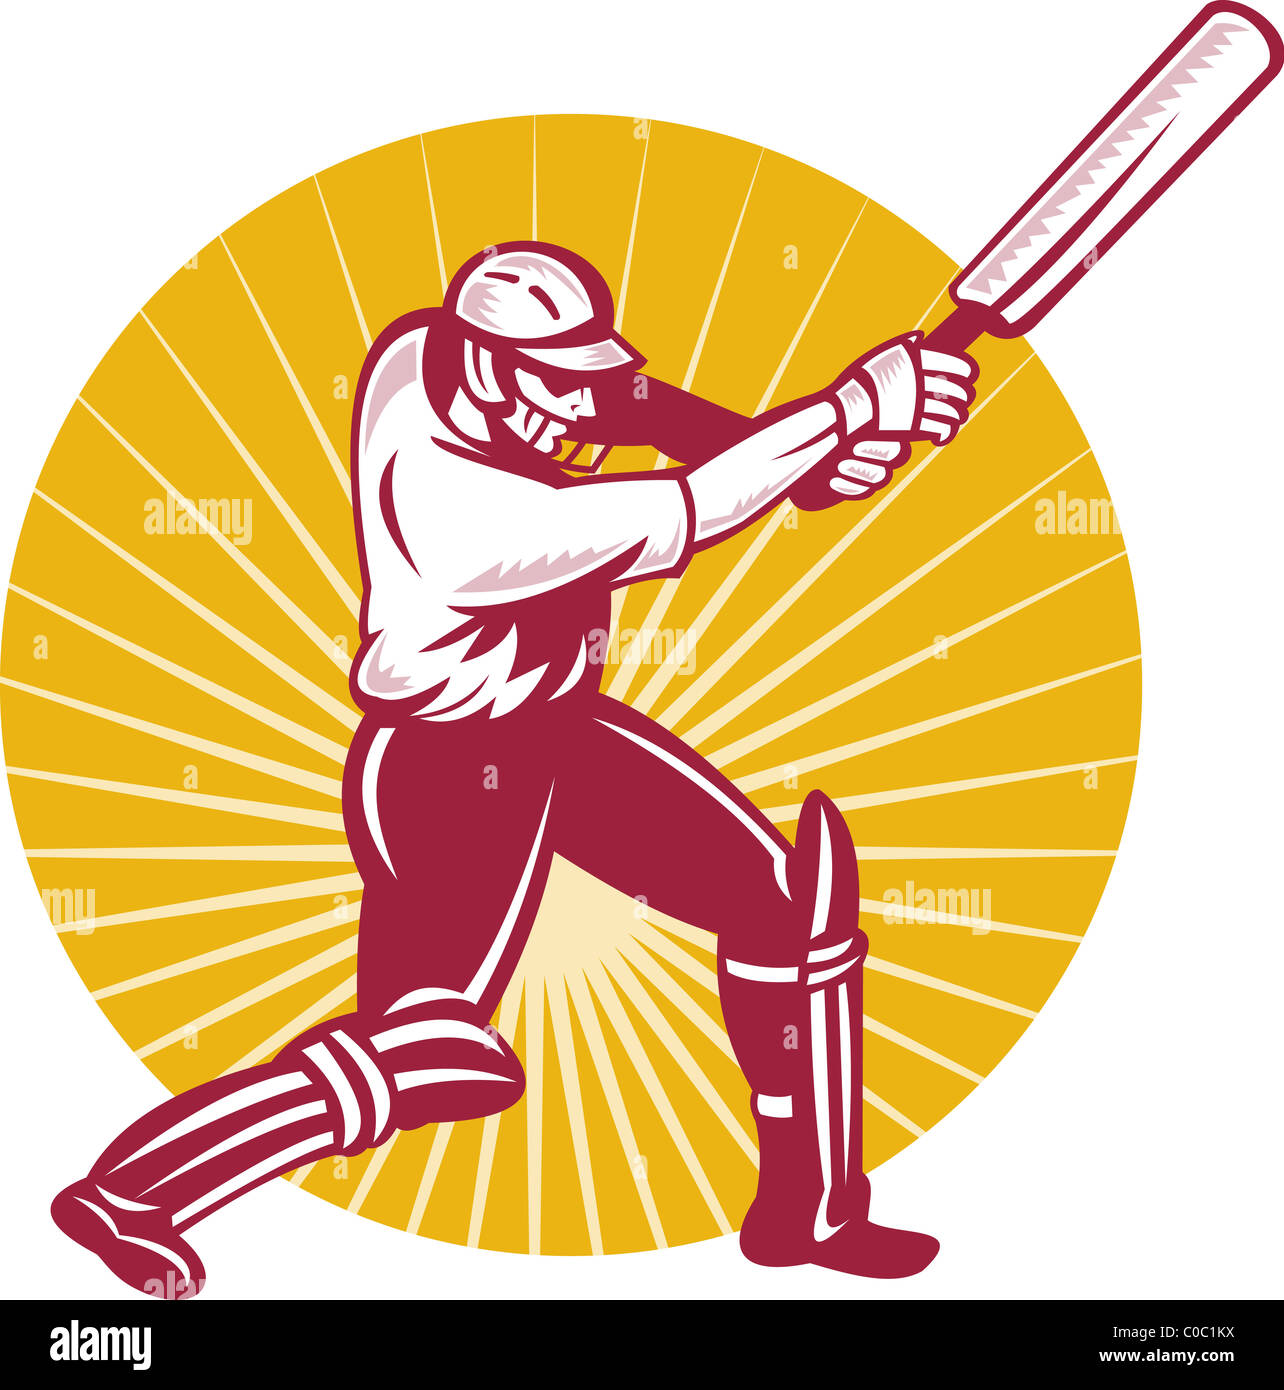 illustration of a cricket batsman batting front view done in woodcut retro style - Stock Image